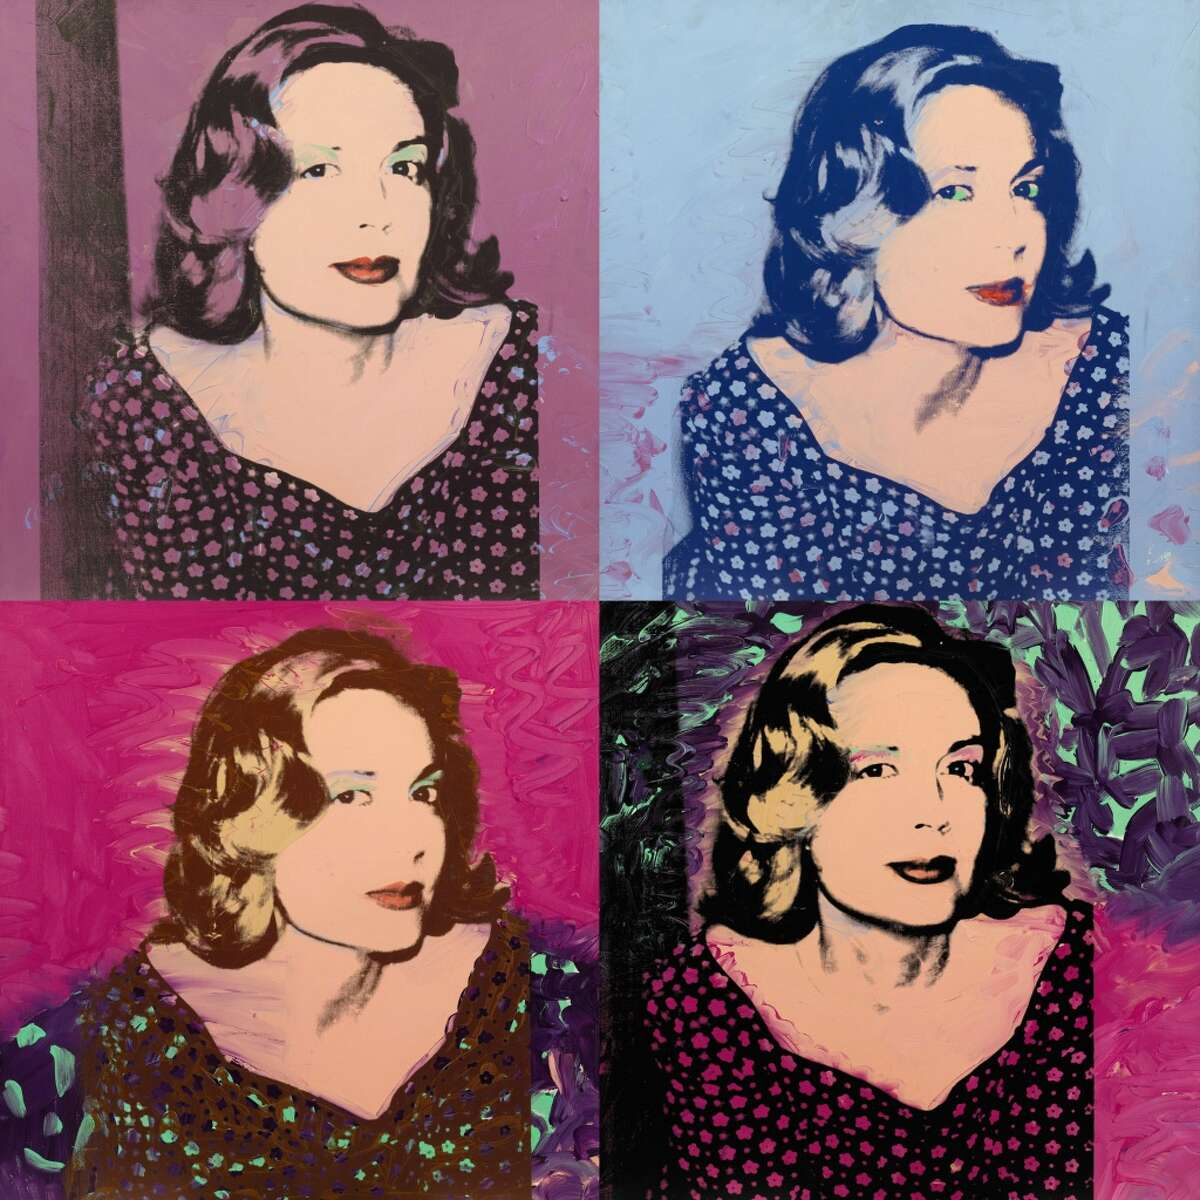 """This undated photo provided by Sotheby'?'s shows Andy Warhol'?'s """"?""""A Group of Four Portraits of Sao Schlumberger."""" Sotheby?'s predicts the 1974 acrylic and silkscreen ink on canvas, from the collection of renowned art benefactors Pierre and Sao Schlumberger, could be $2-3 million when it is auctioned in November. The Schlumbergers were the first patrons to commission Warhol for a silkscreen portrait. (AP Photo/Sotheby?''s)"""